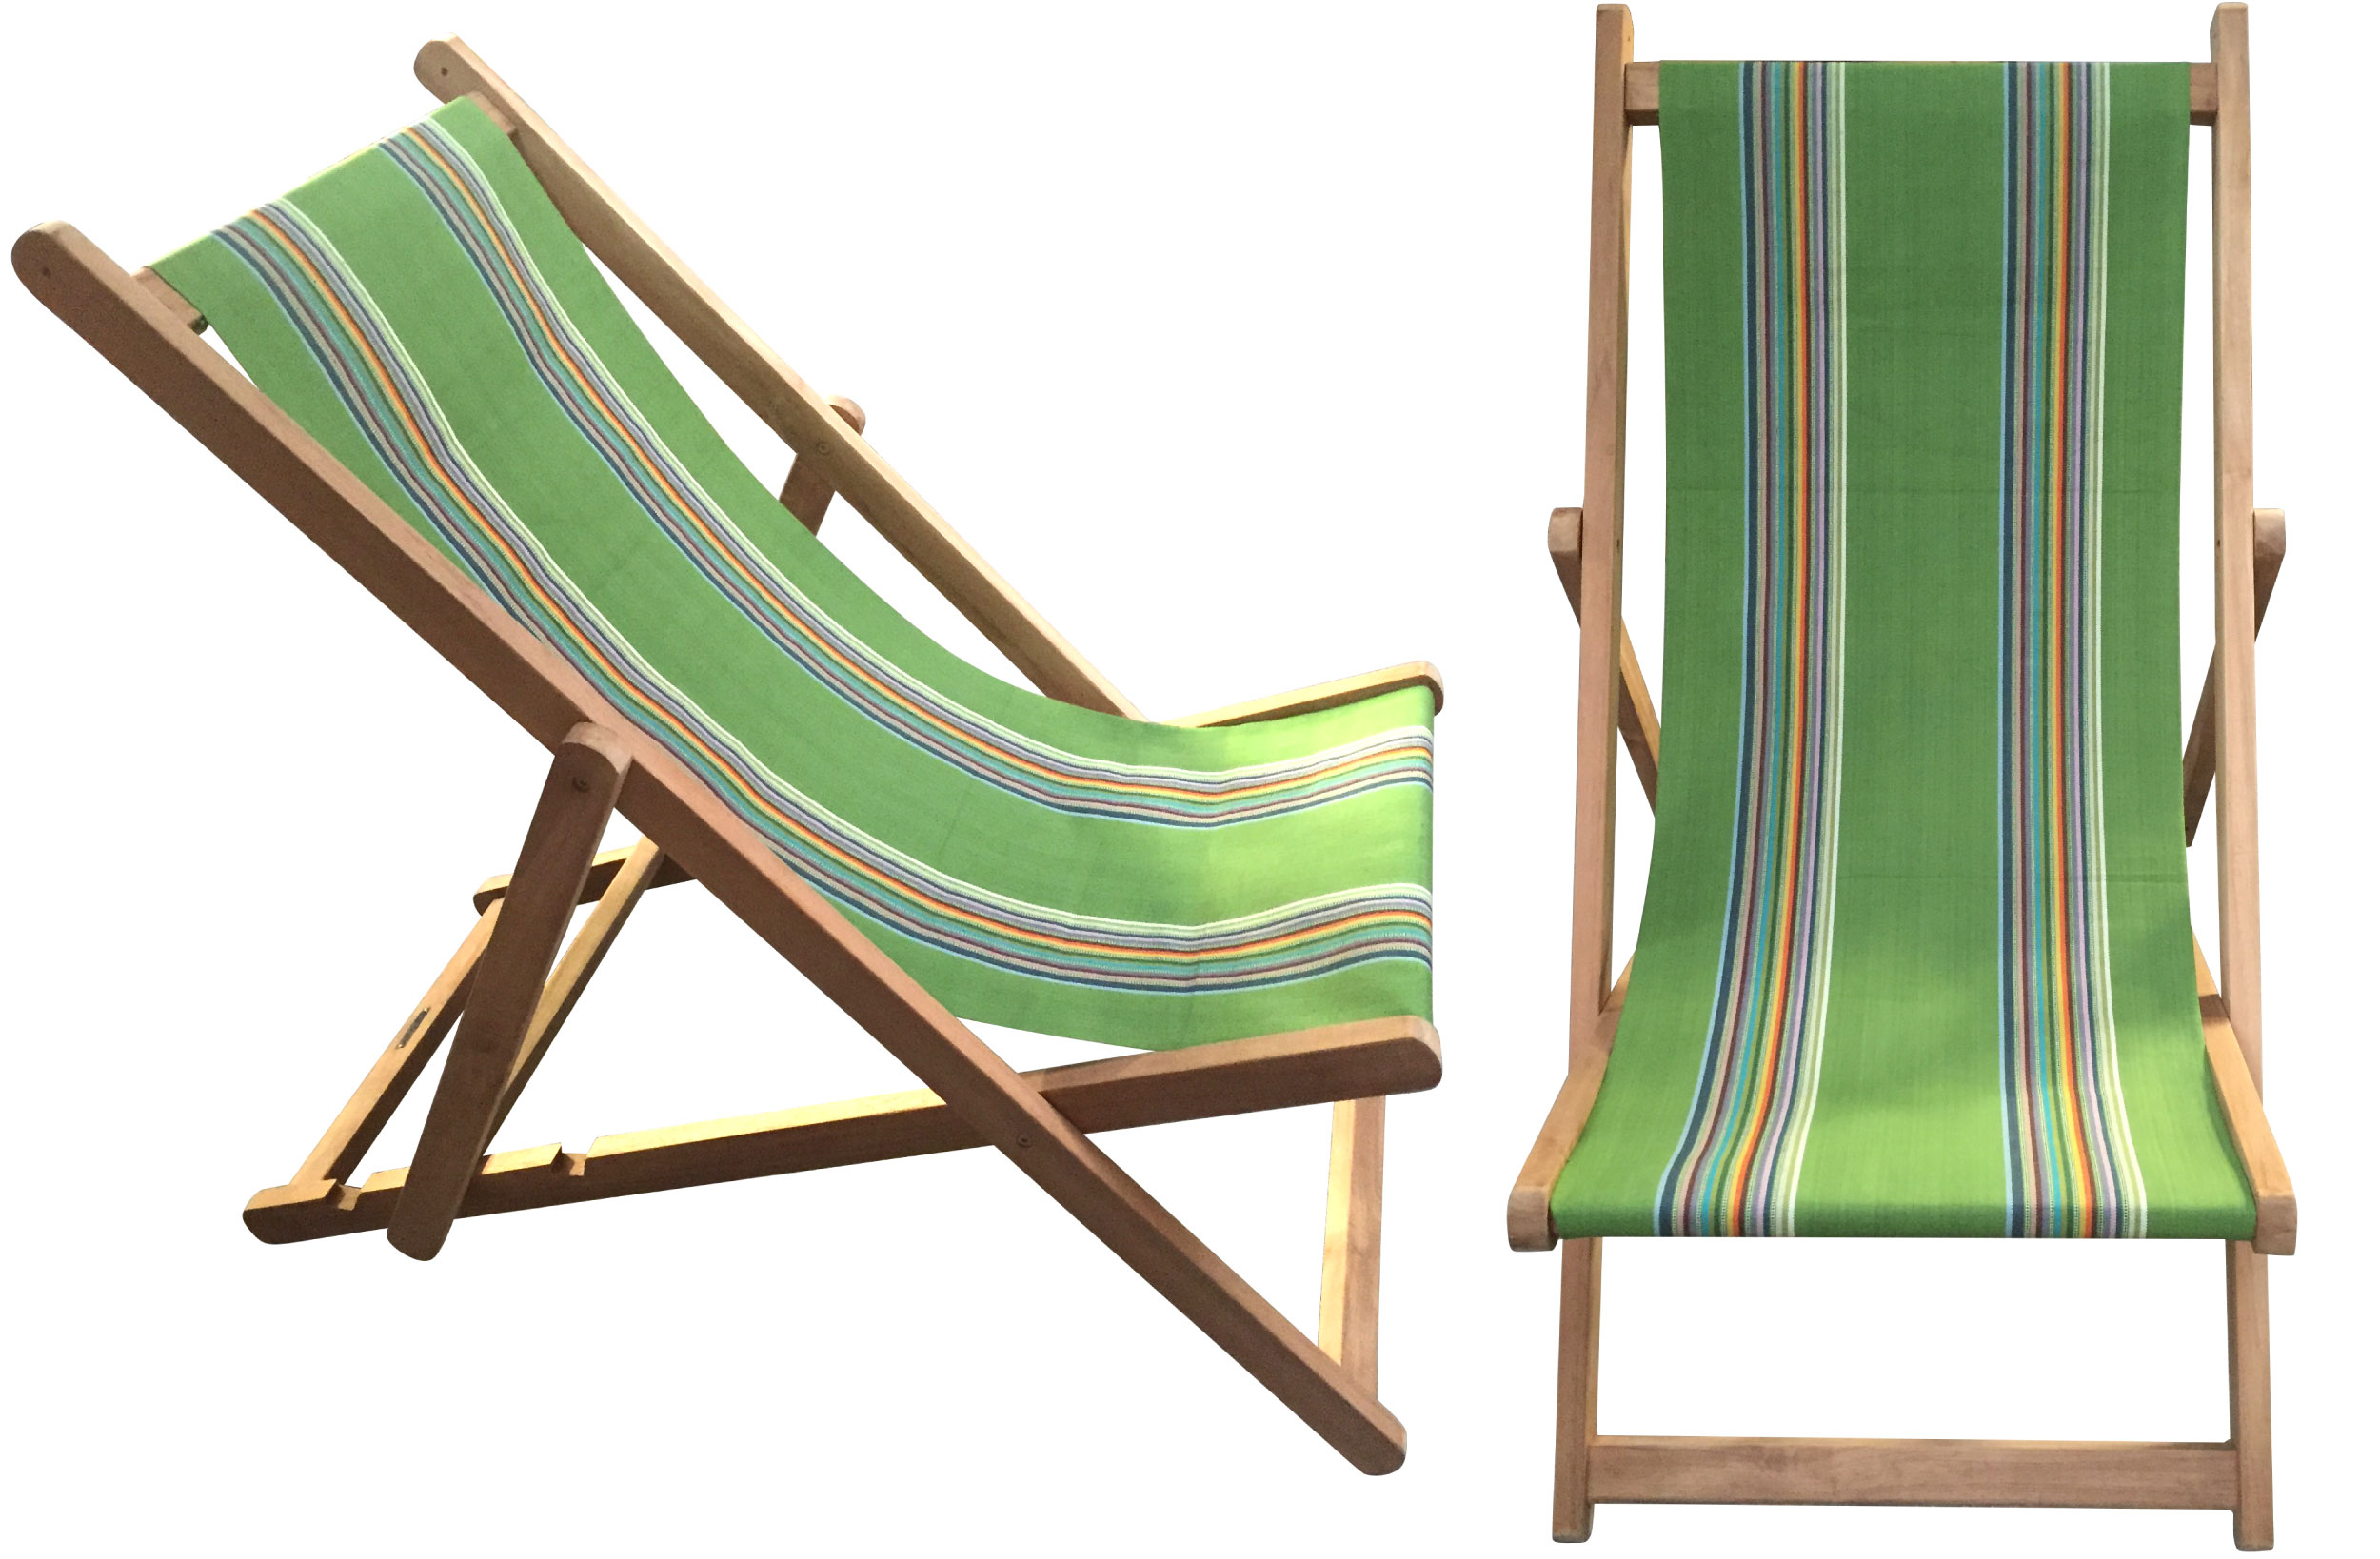 Green Deckchairs | Wooden Folding Deck Chairs - Punting Stripe